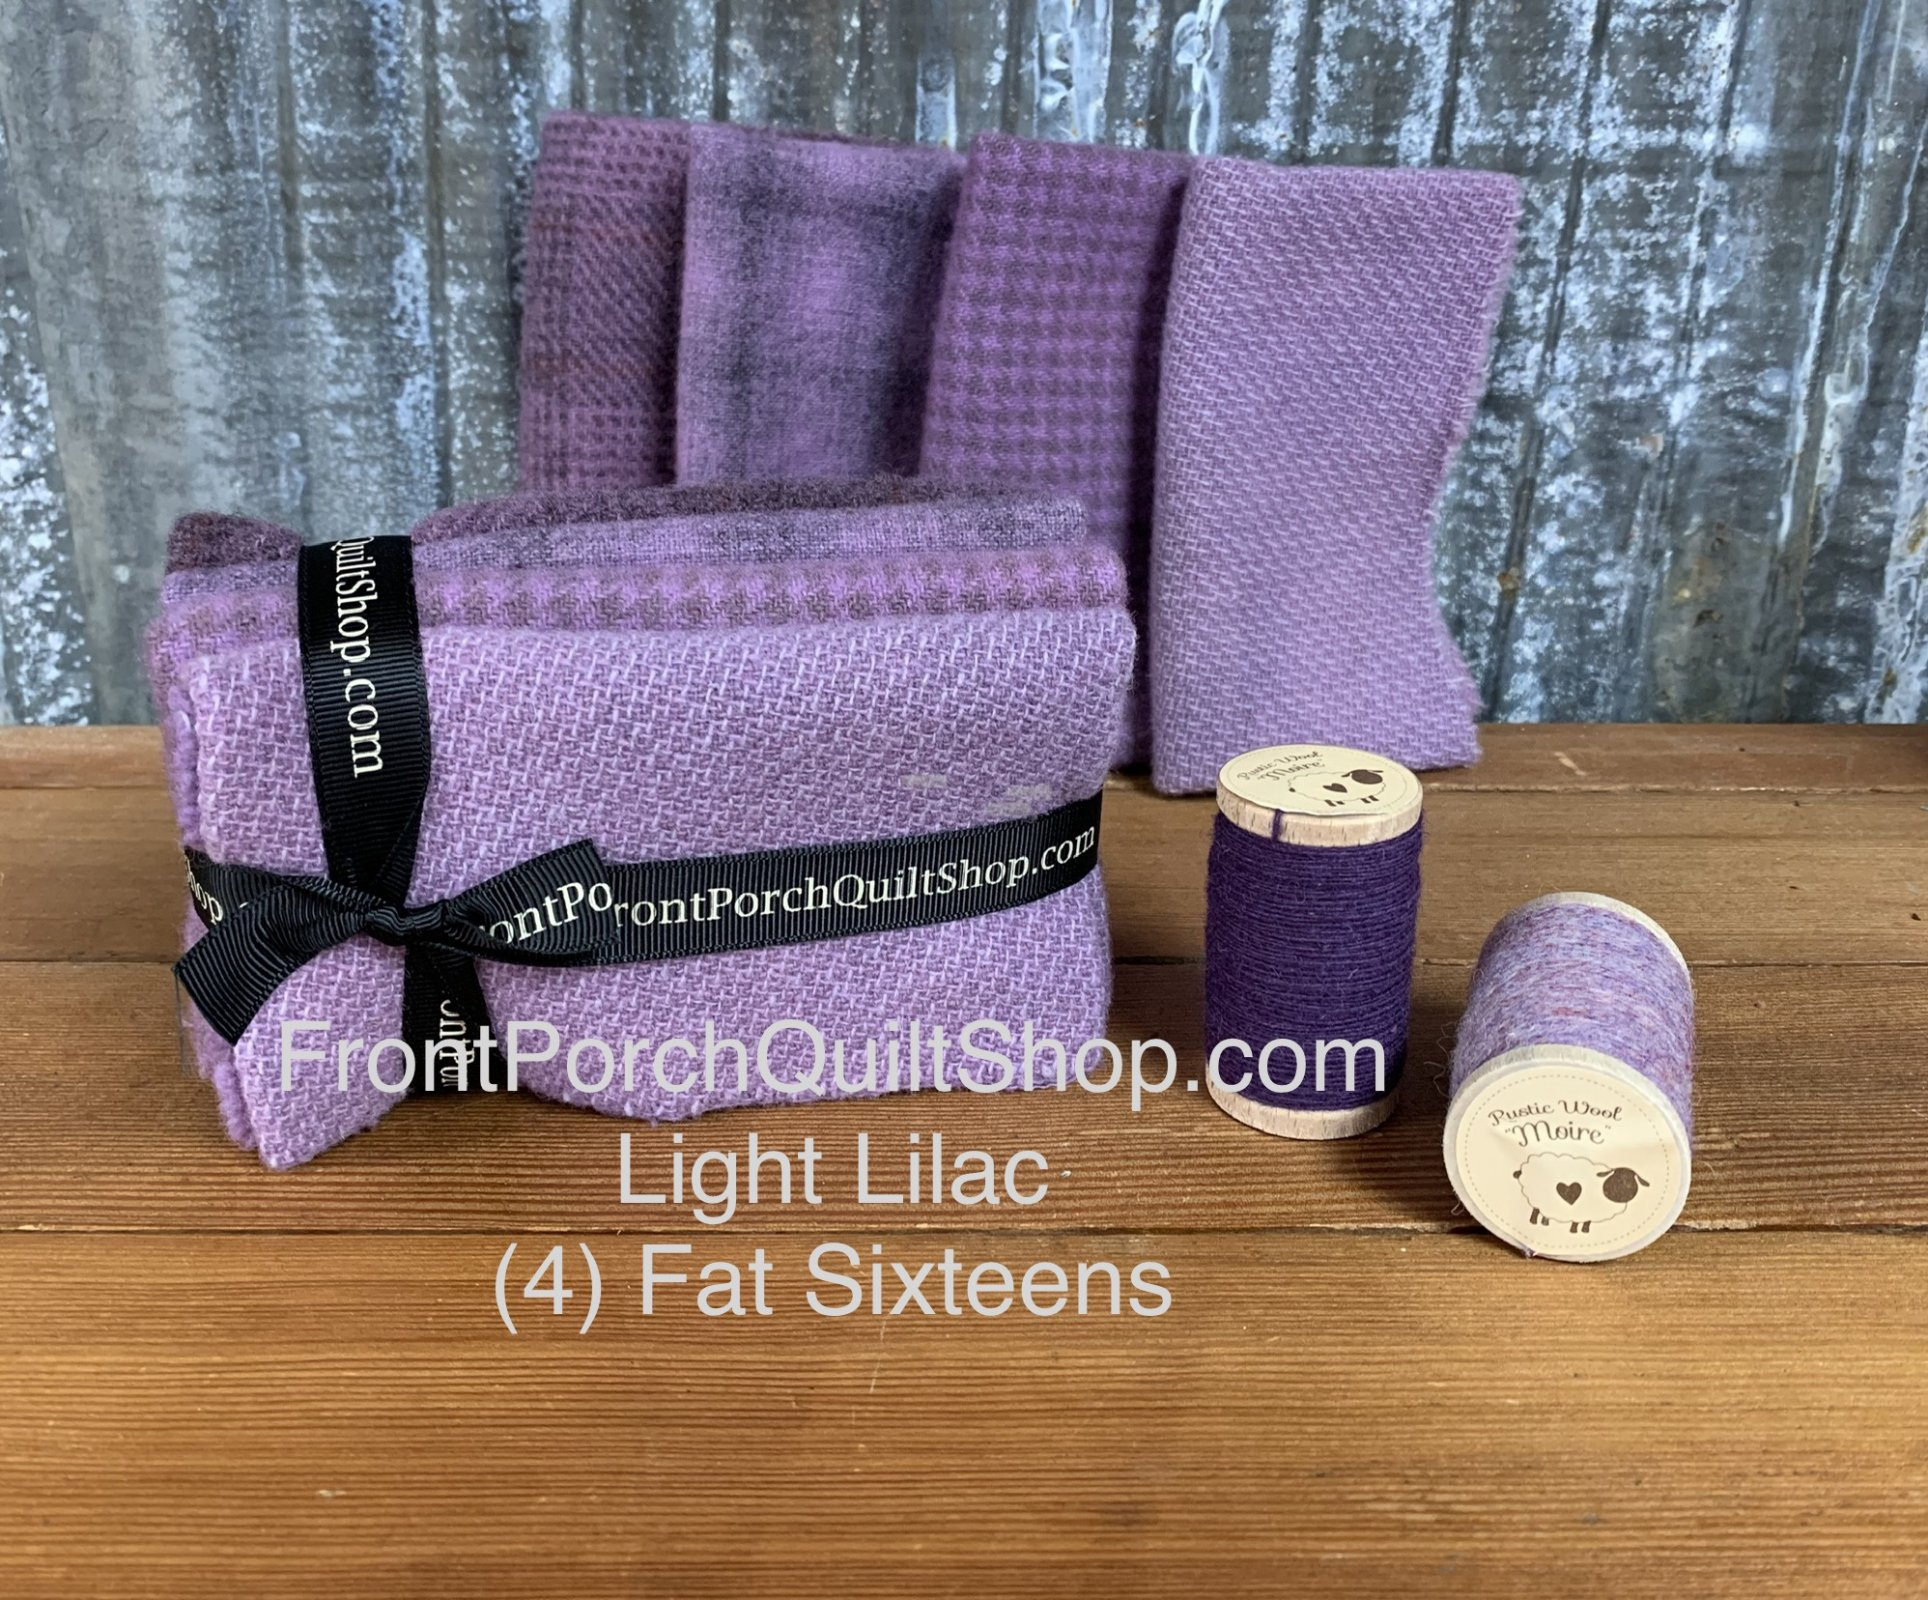 Fat Sixteen Bundle Light Lilac